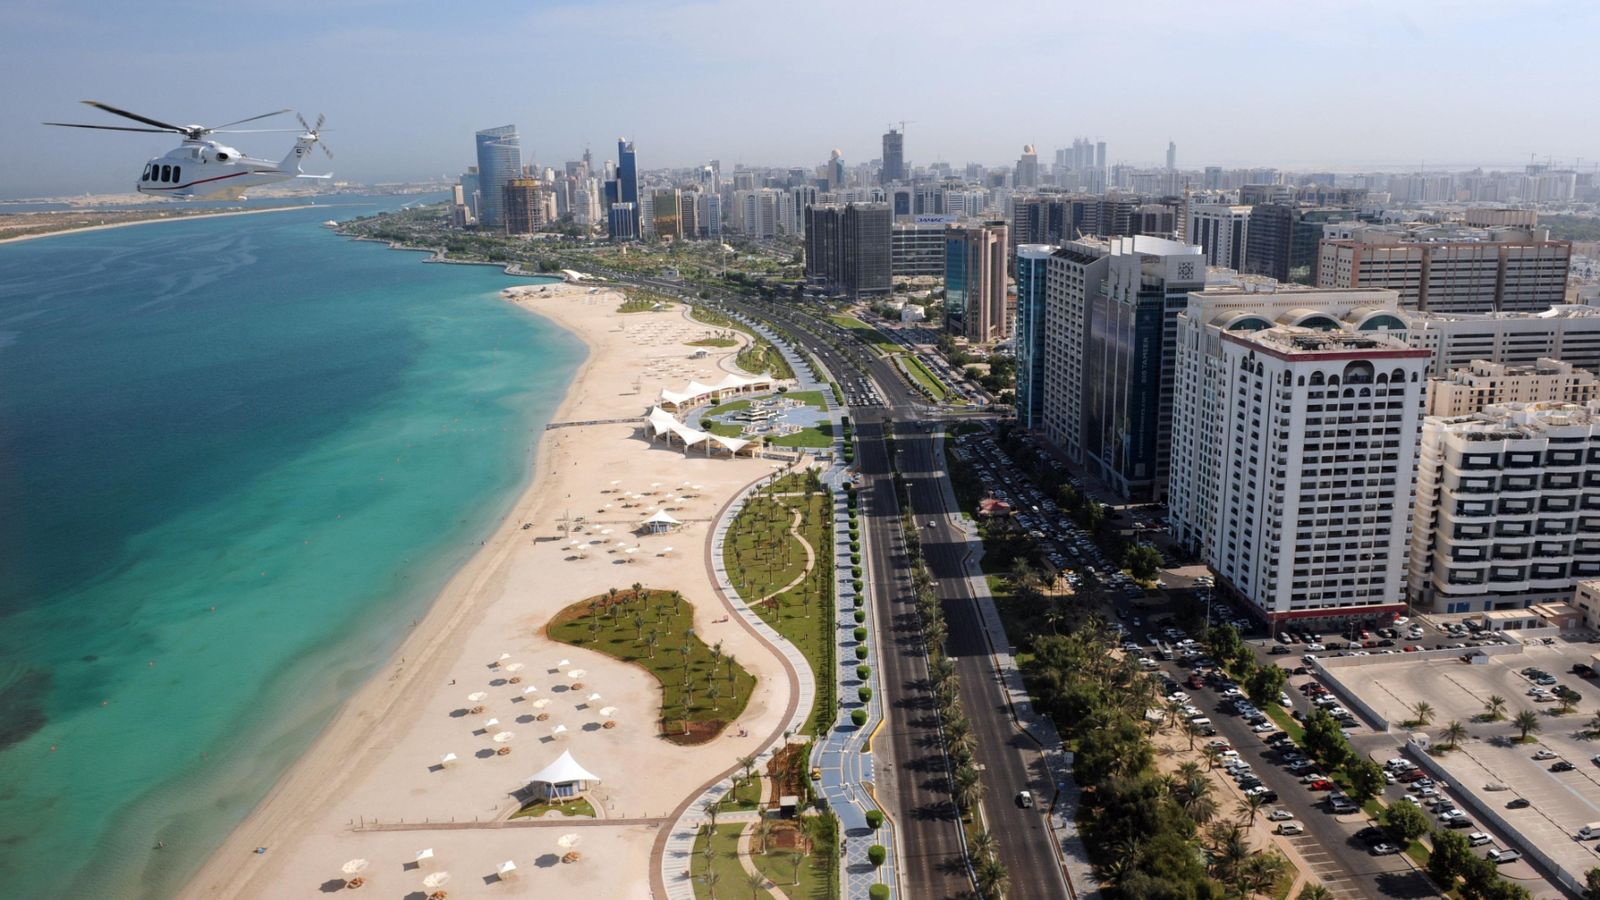 United Arab Emirates tackles hot weather by 'creating its own rain' with drones